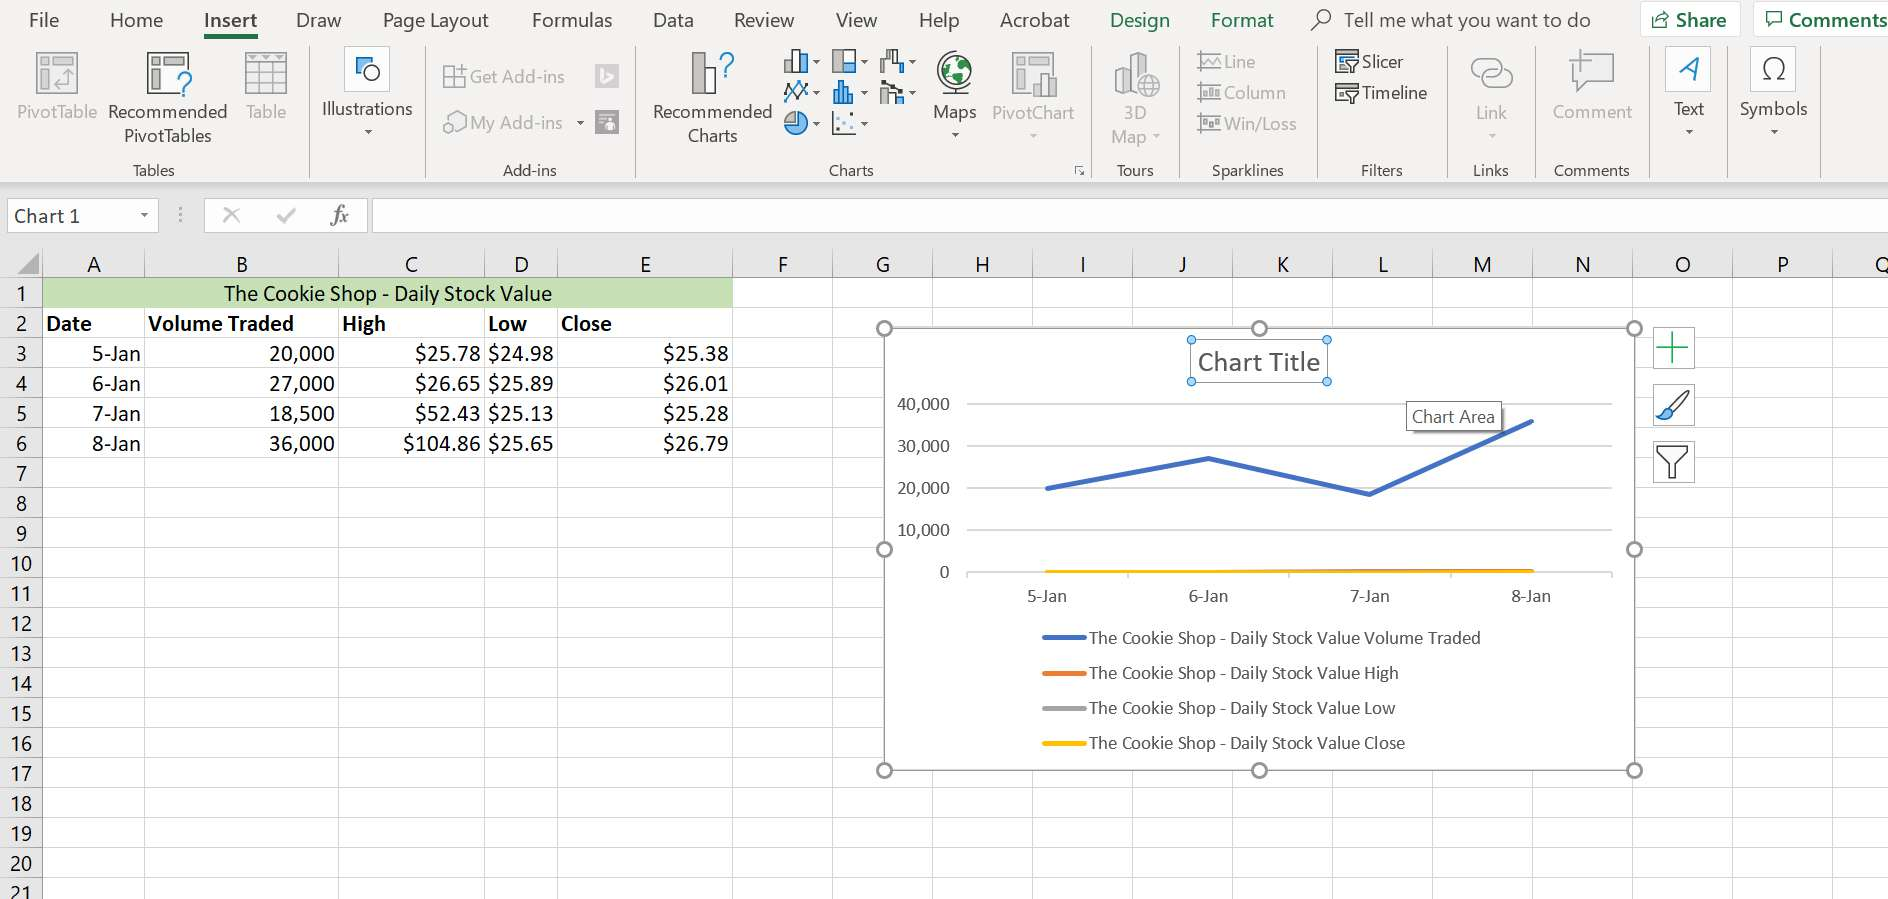 Excel line chart with Chart Title selected.